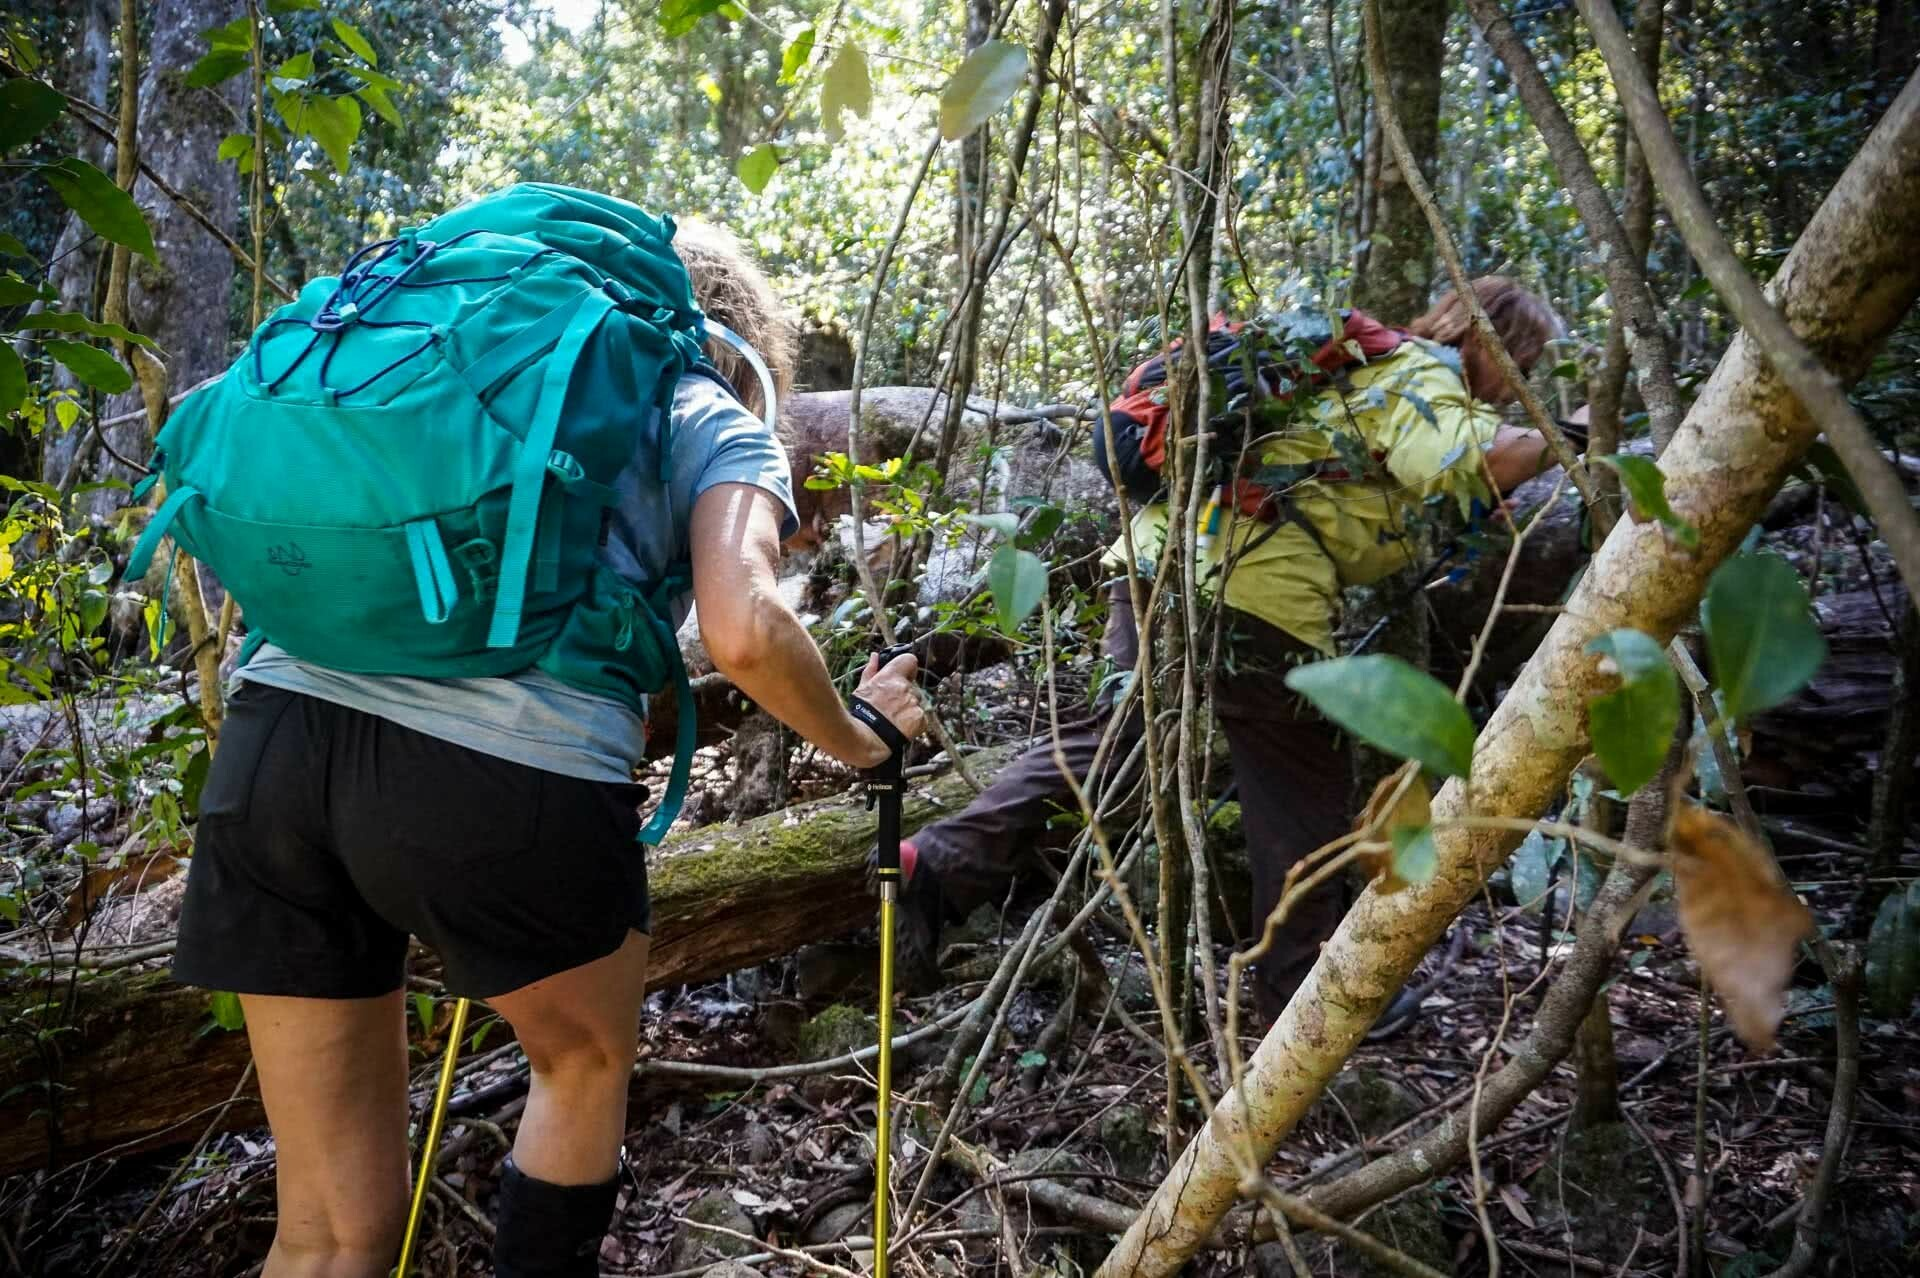 Pushing through scrub on way to waterfall, It's Tick Season! How Deal With and Avoid the Nastiest of Critters, Roz Glazebrook